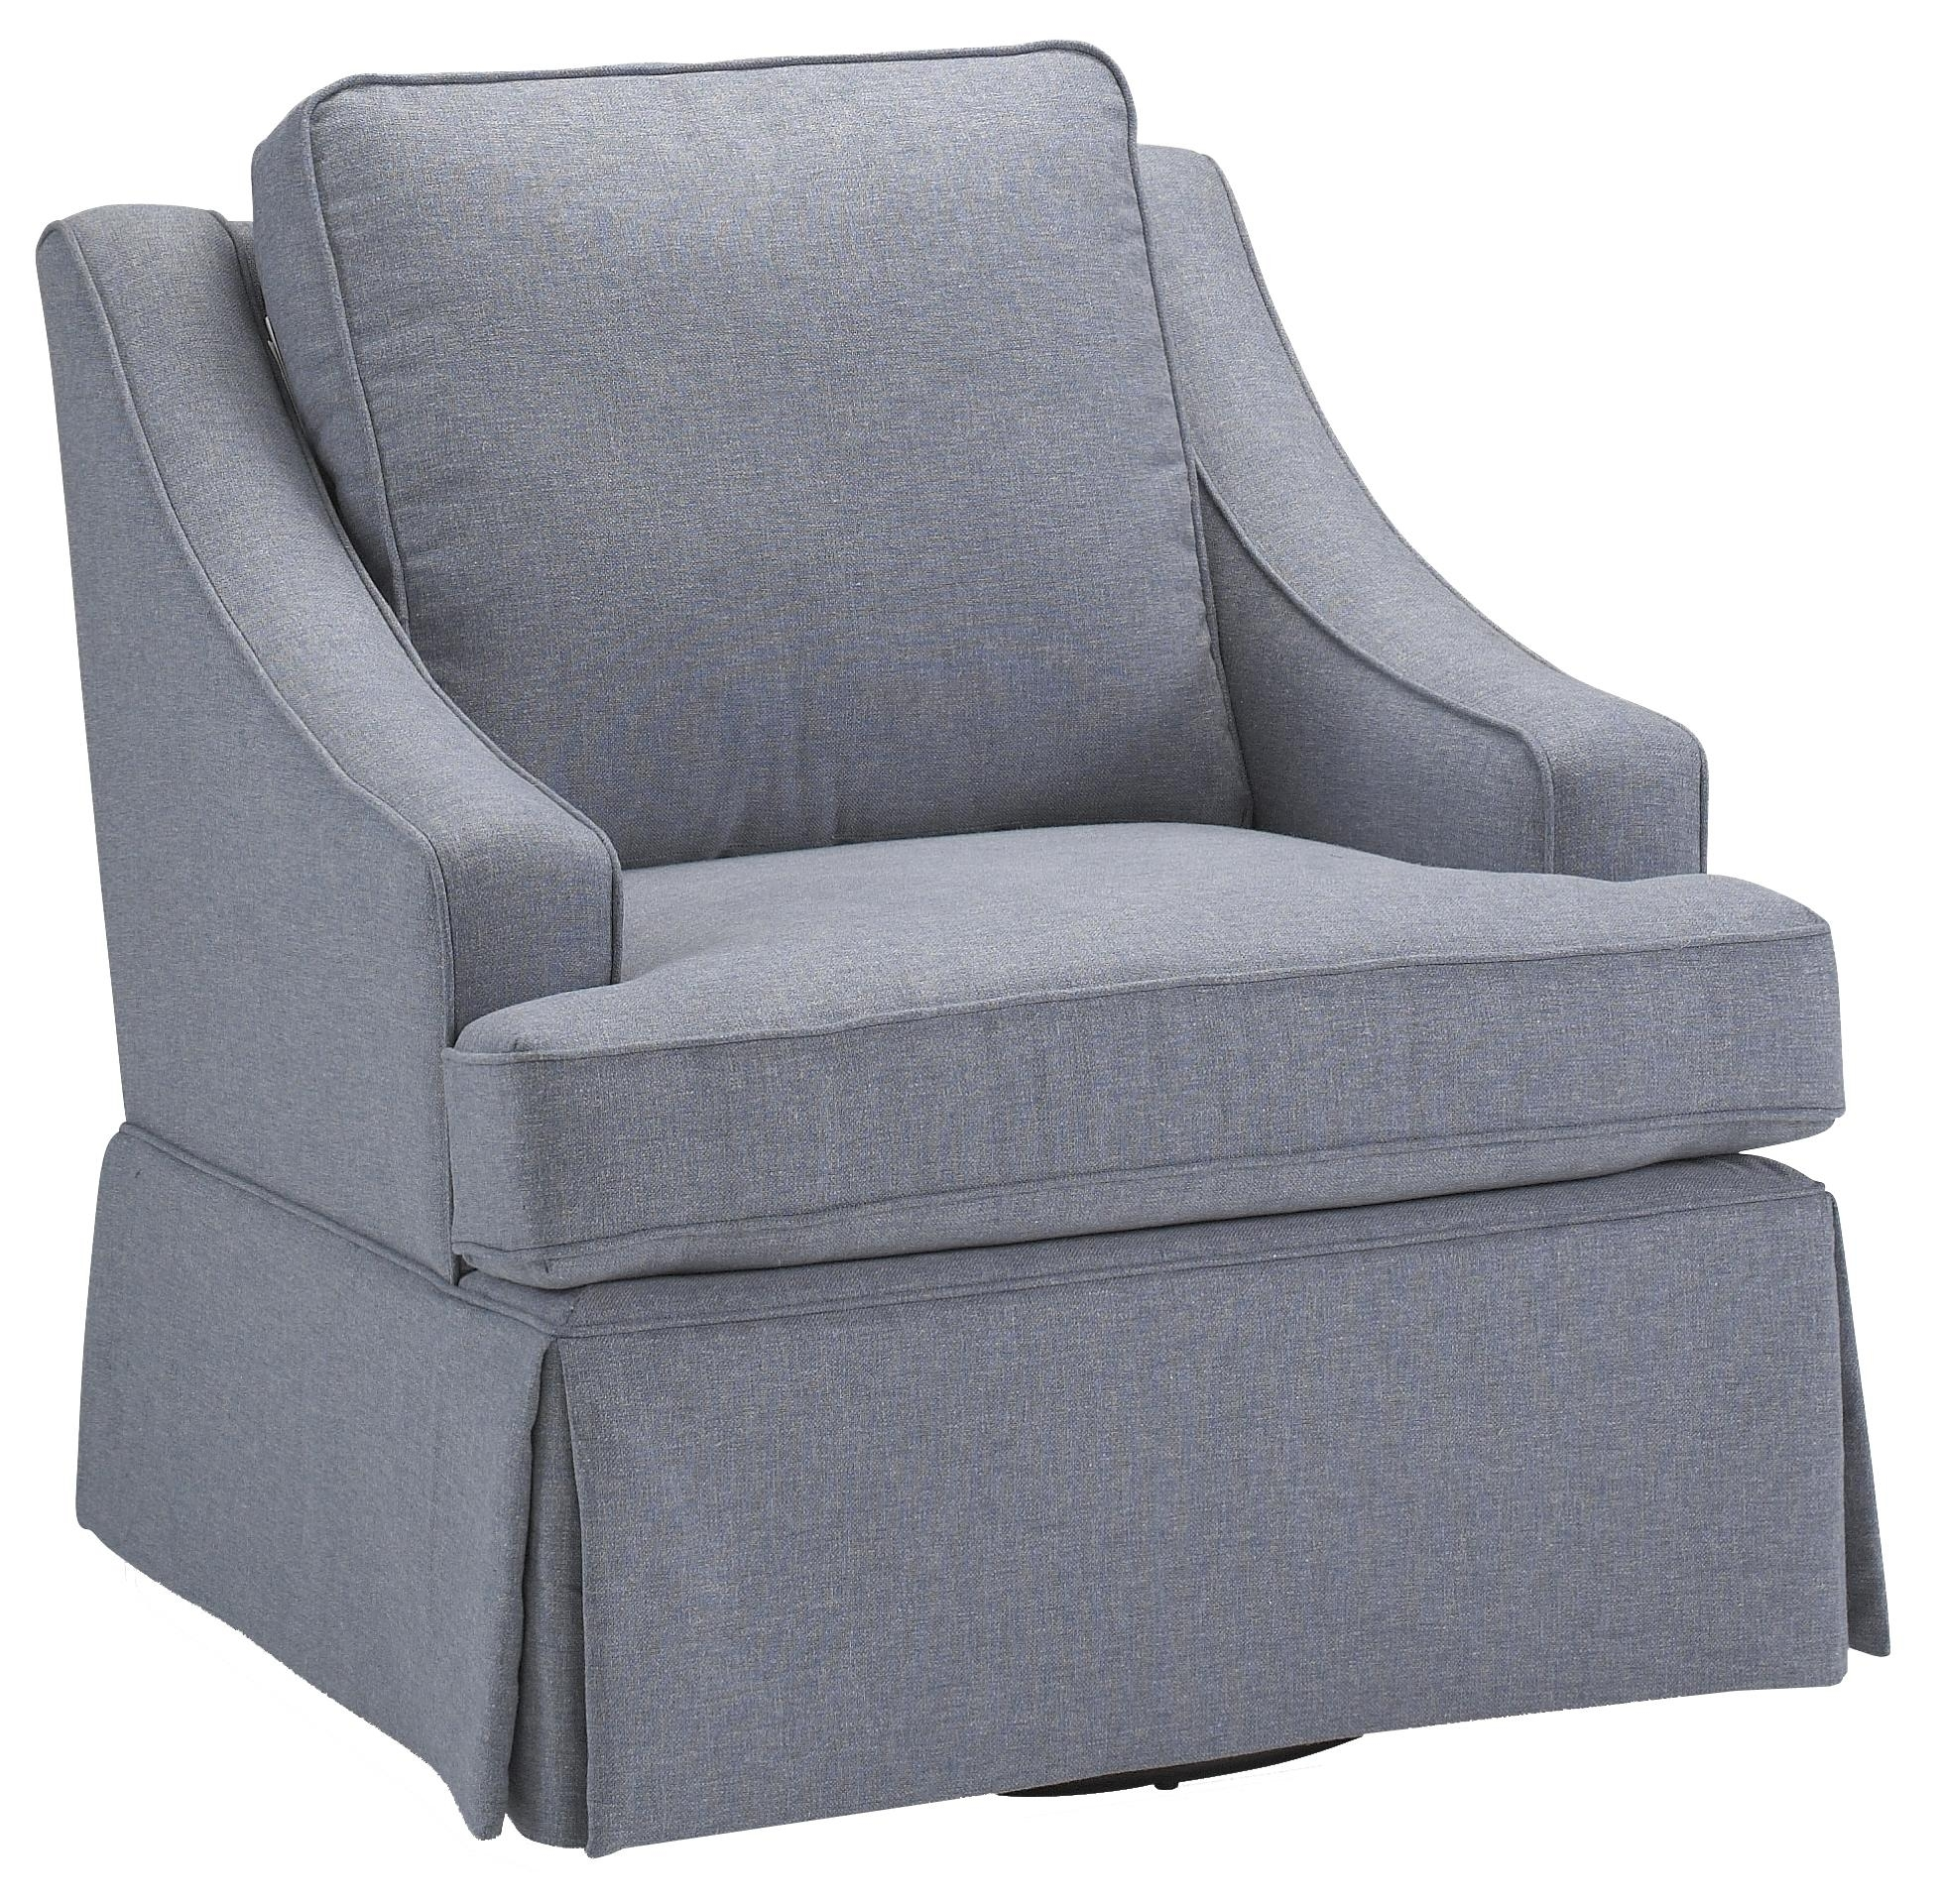 Best Home Furnishings Swivel Glide Chairs Contemporary Ayla Swivel Regarding Swivel Rocking Chairs (#3 of 15)